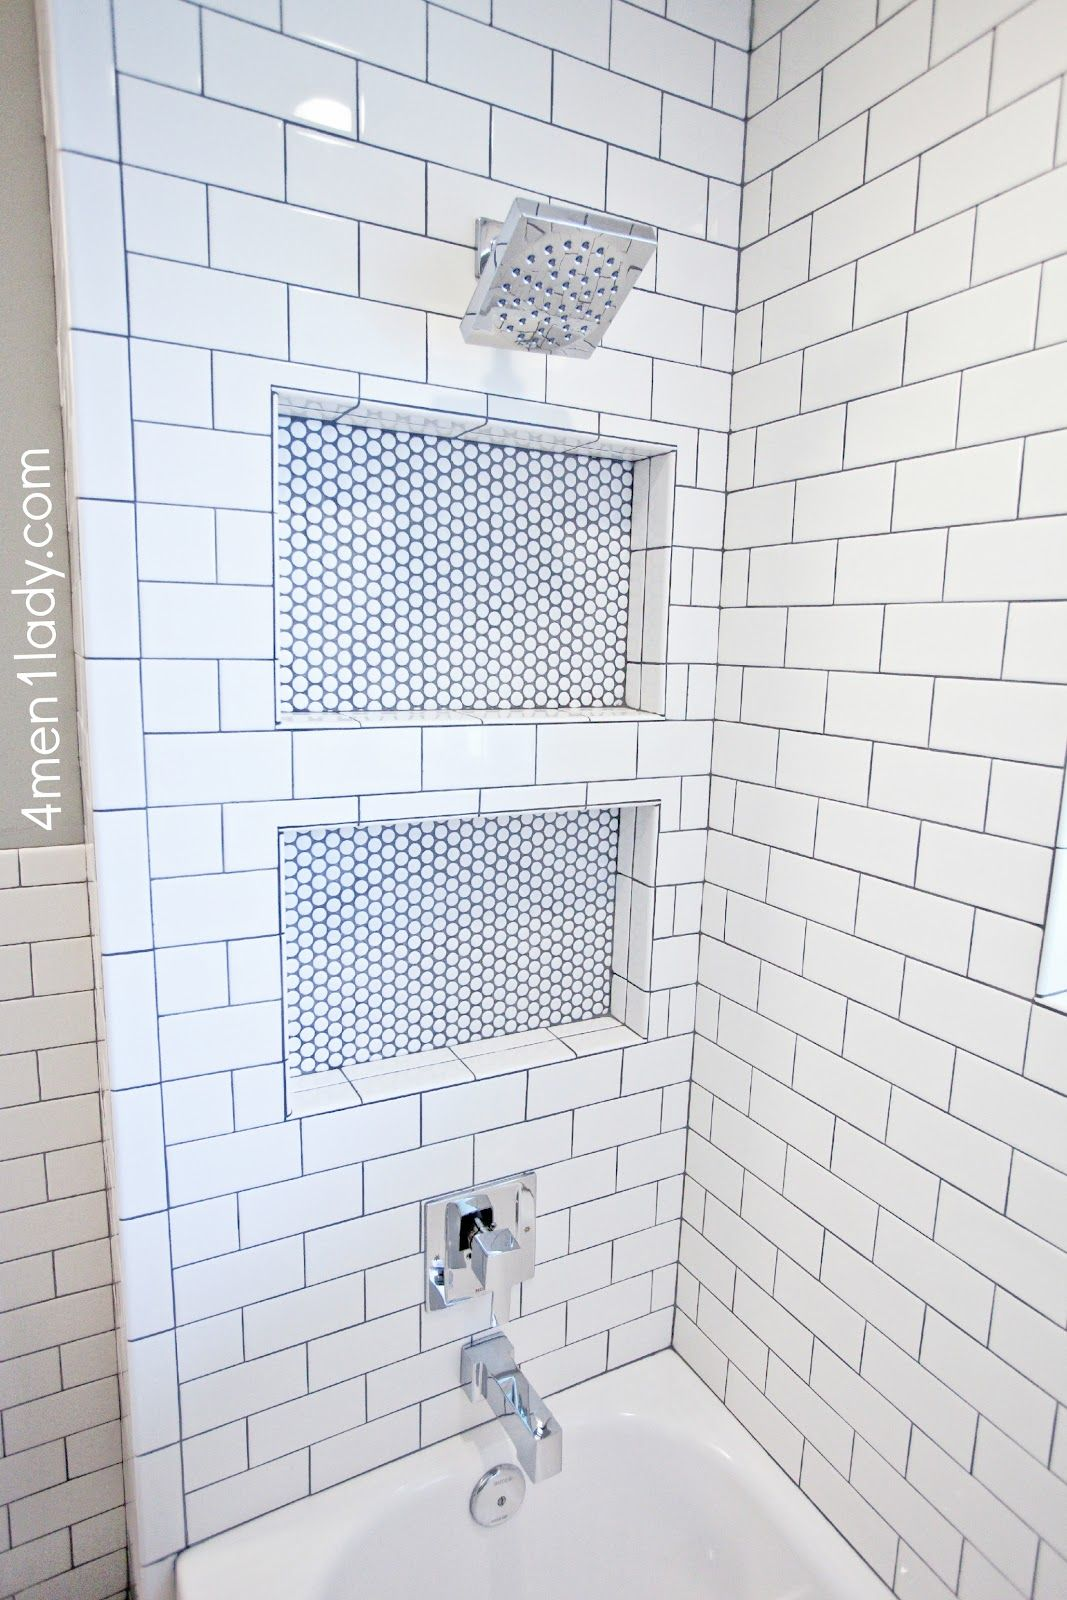 4 Men 1 Lady: tile change | storage | Pinterest | White subway tiles ...